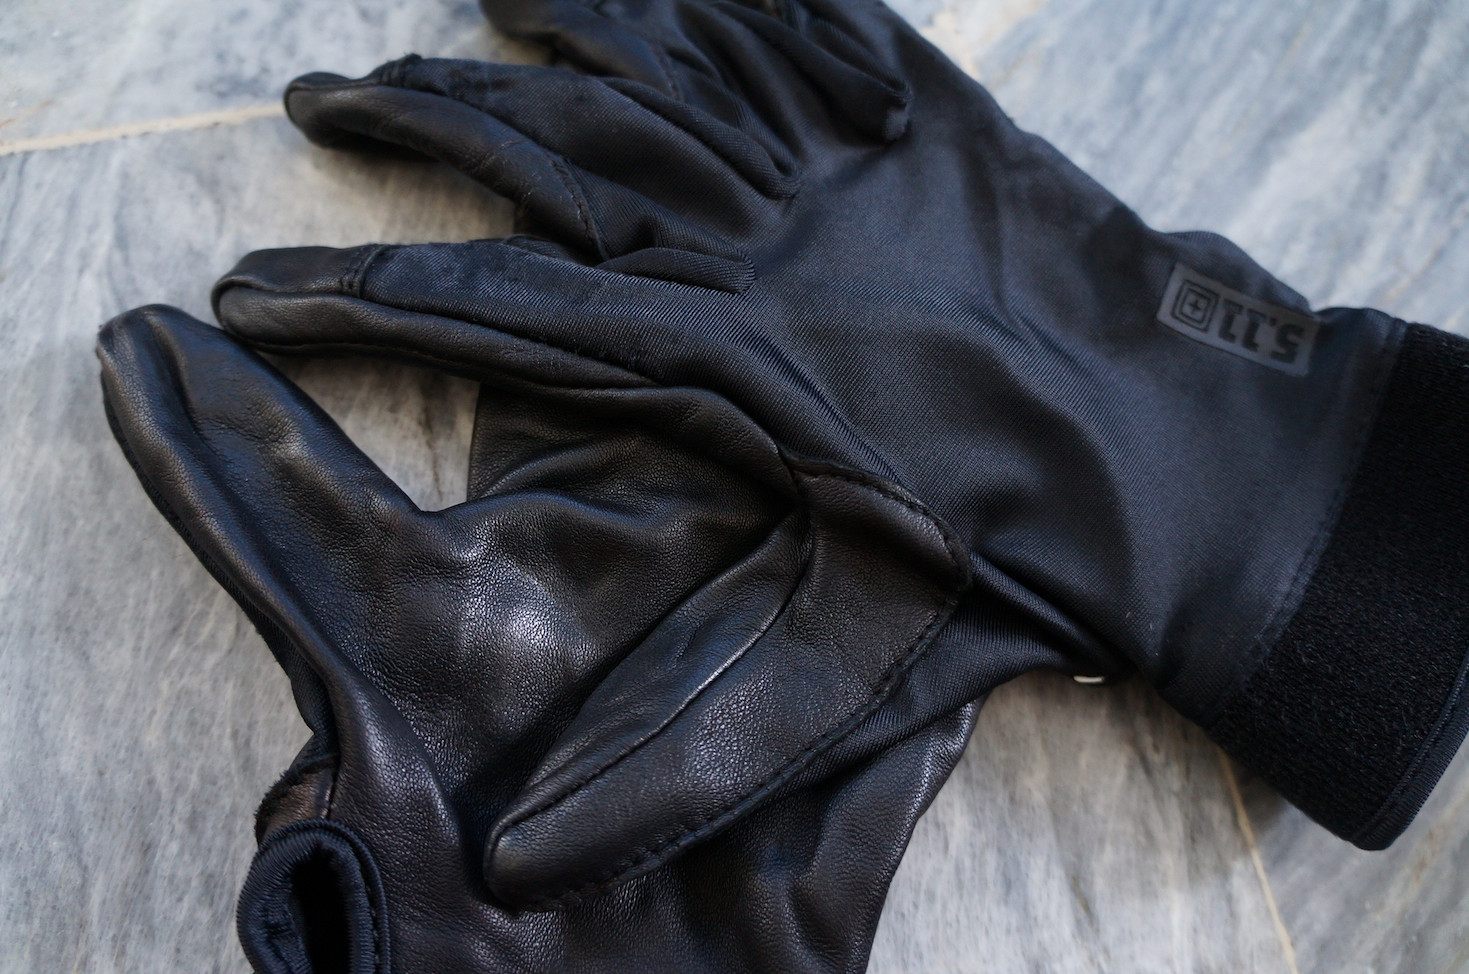 5.11 leather gloves